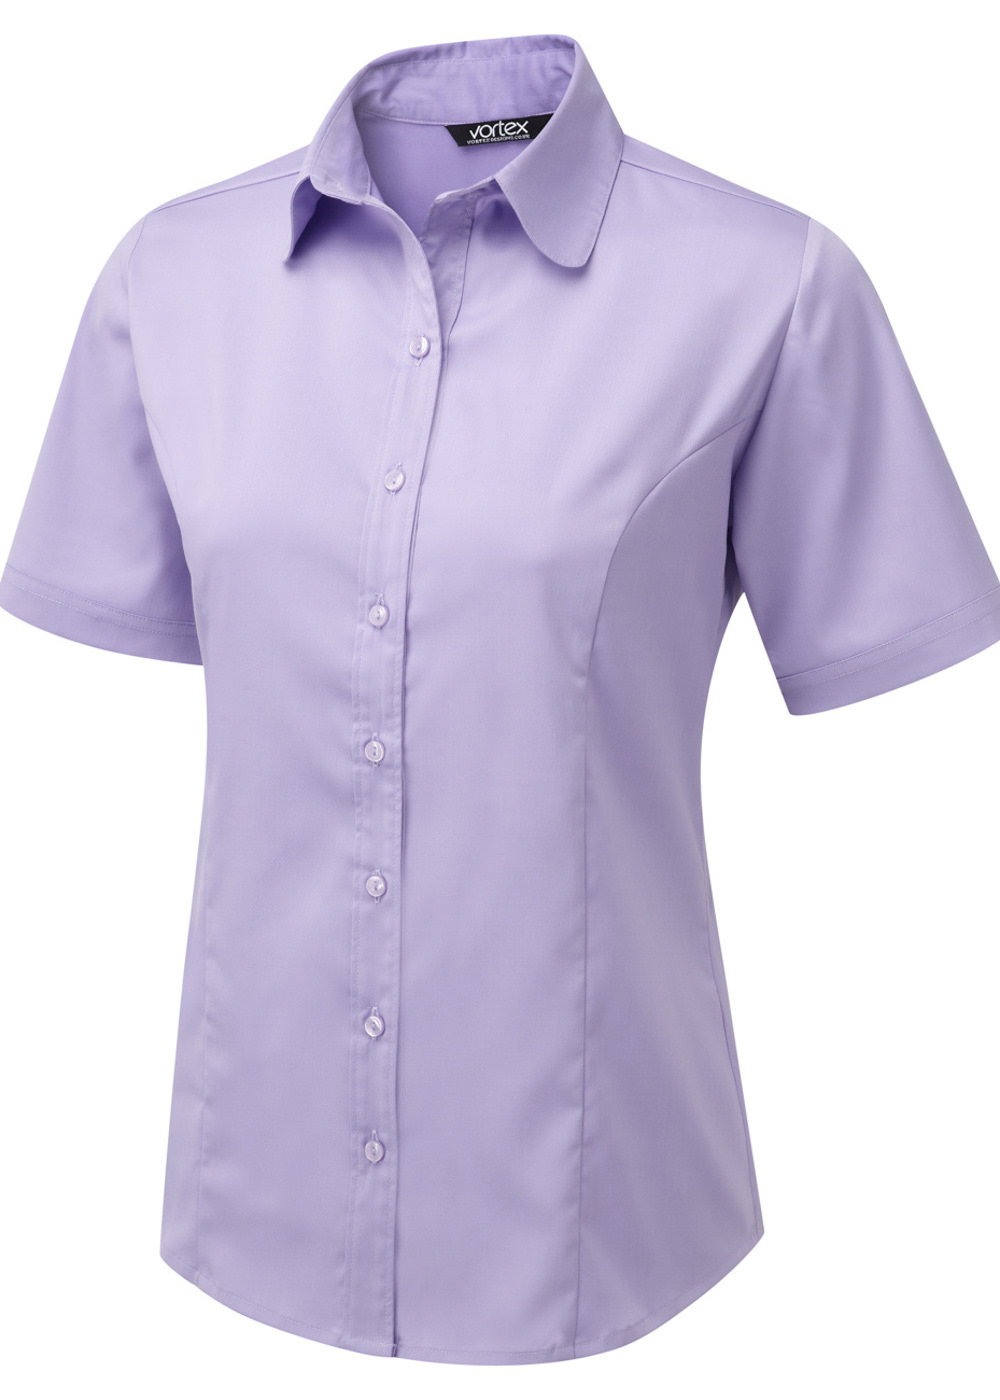 KATY - Shirt style Cotton Touch Stretch blouse